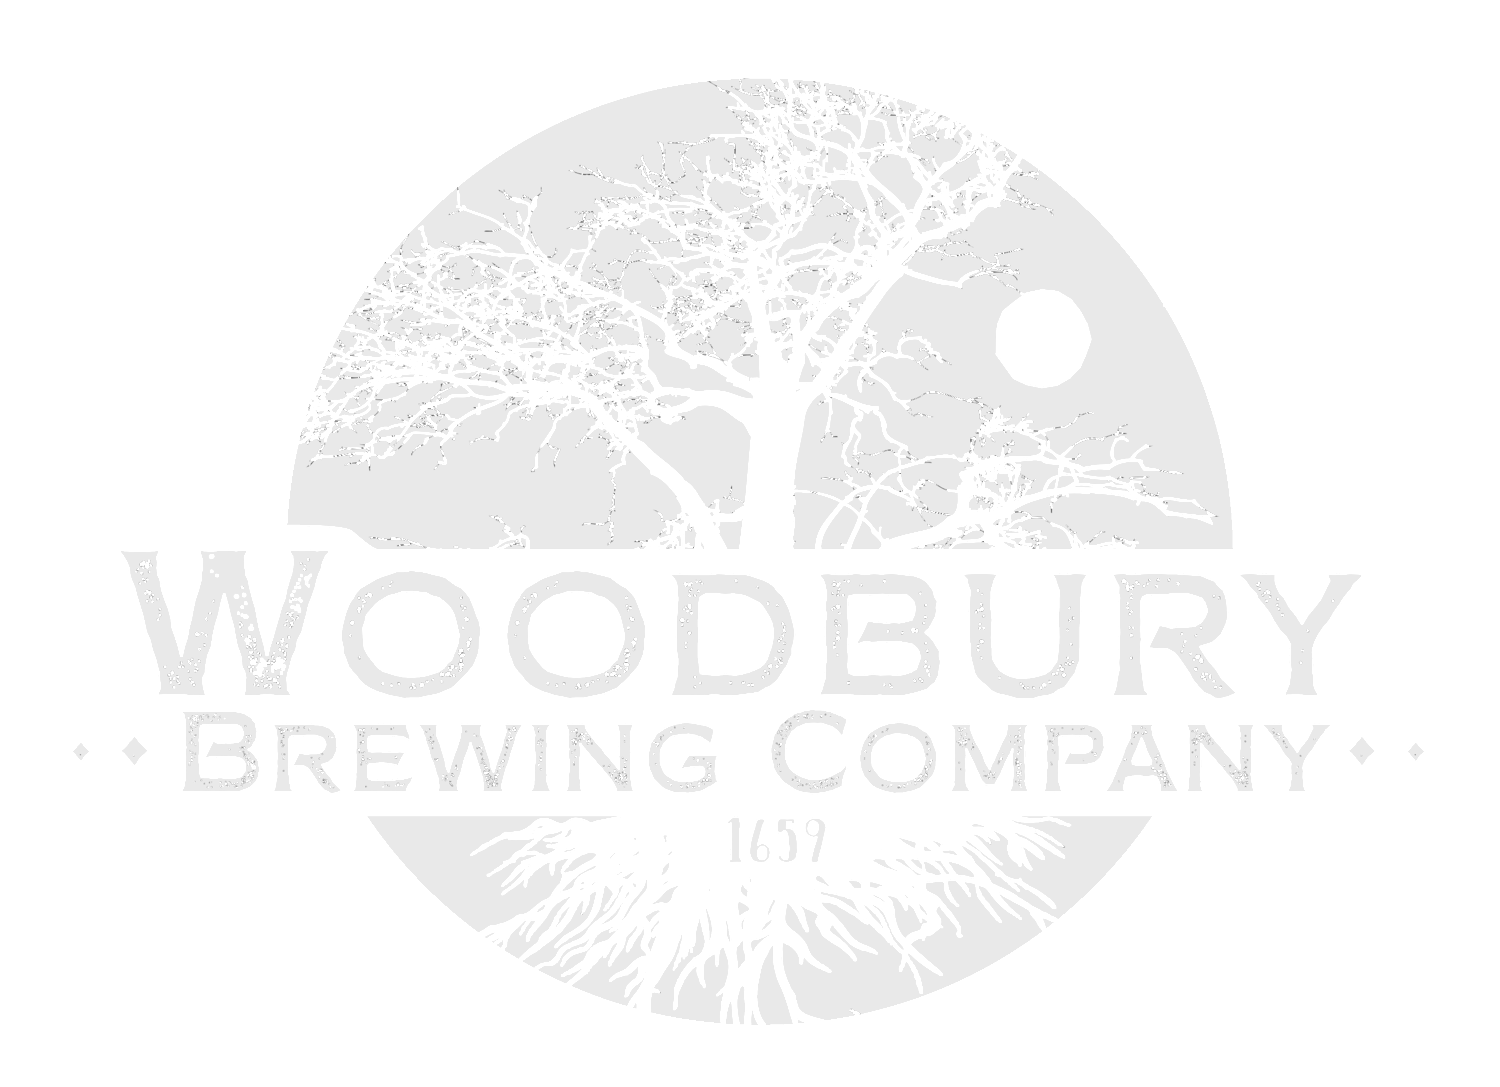 Woodbury Brewing Company